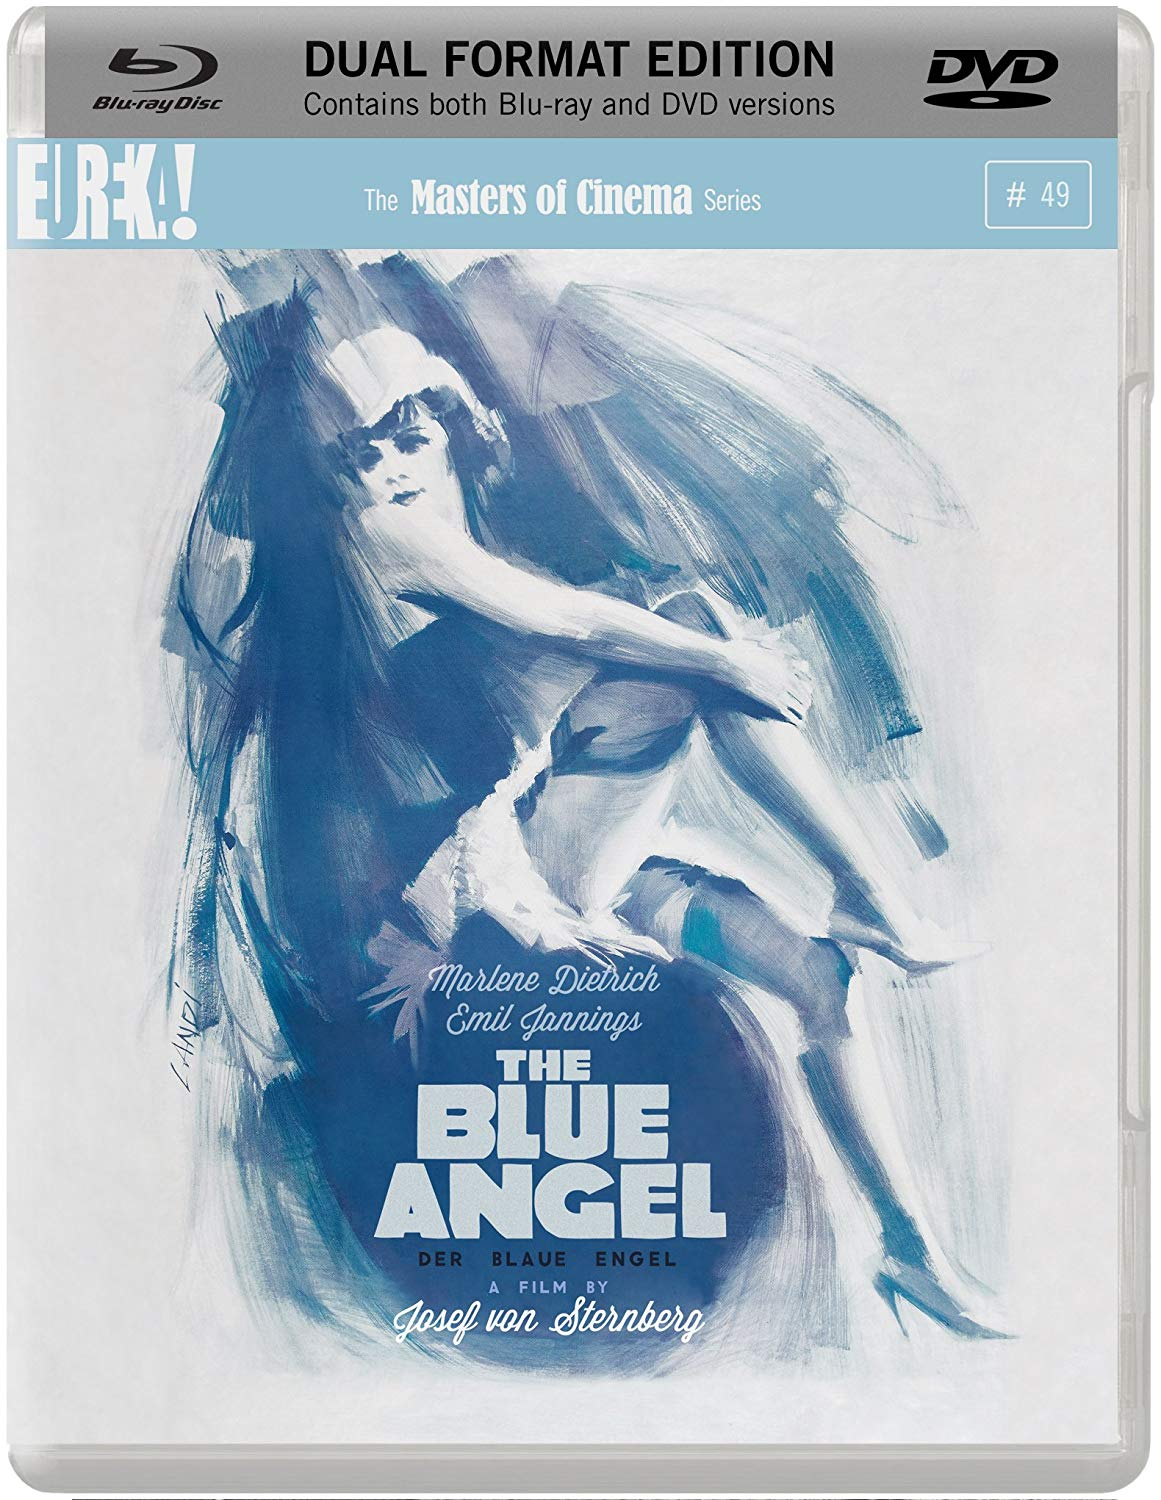 Buy The Blue Angel (Dual Format Edition)